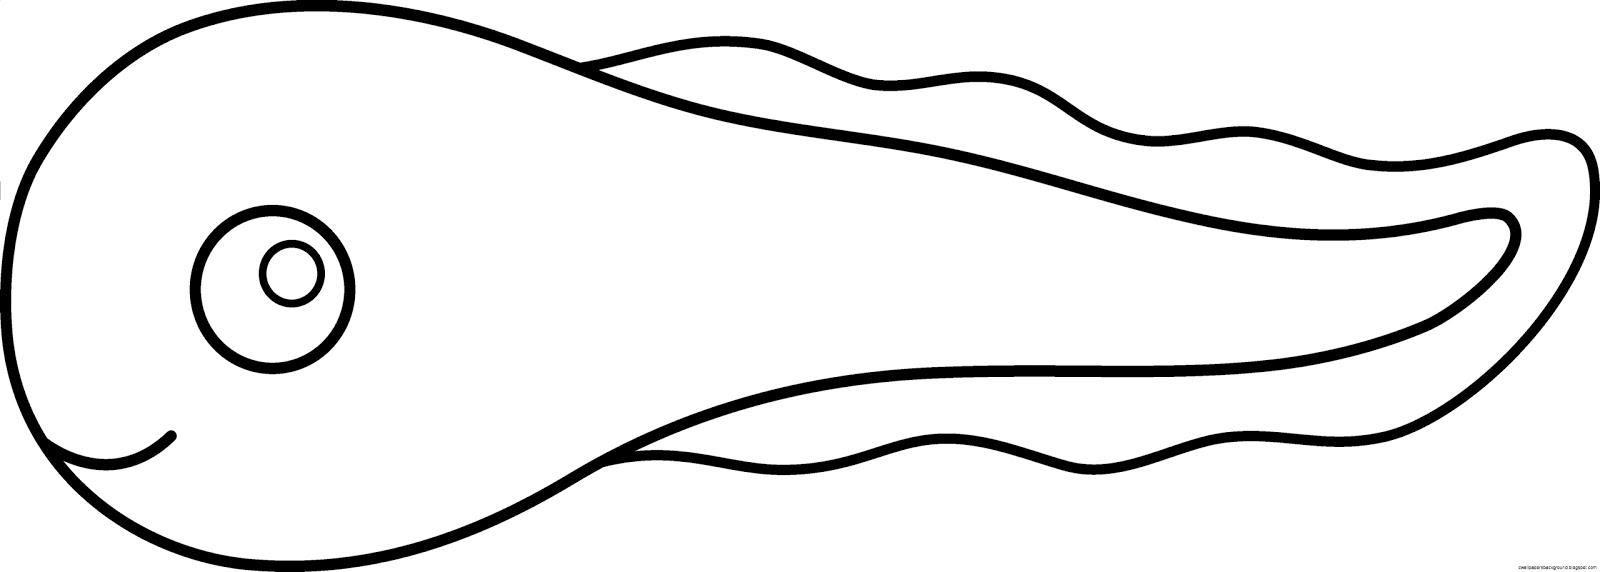 tadpole drawing at getdrawings com free for personal use tadpole rh getdrawings com